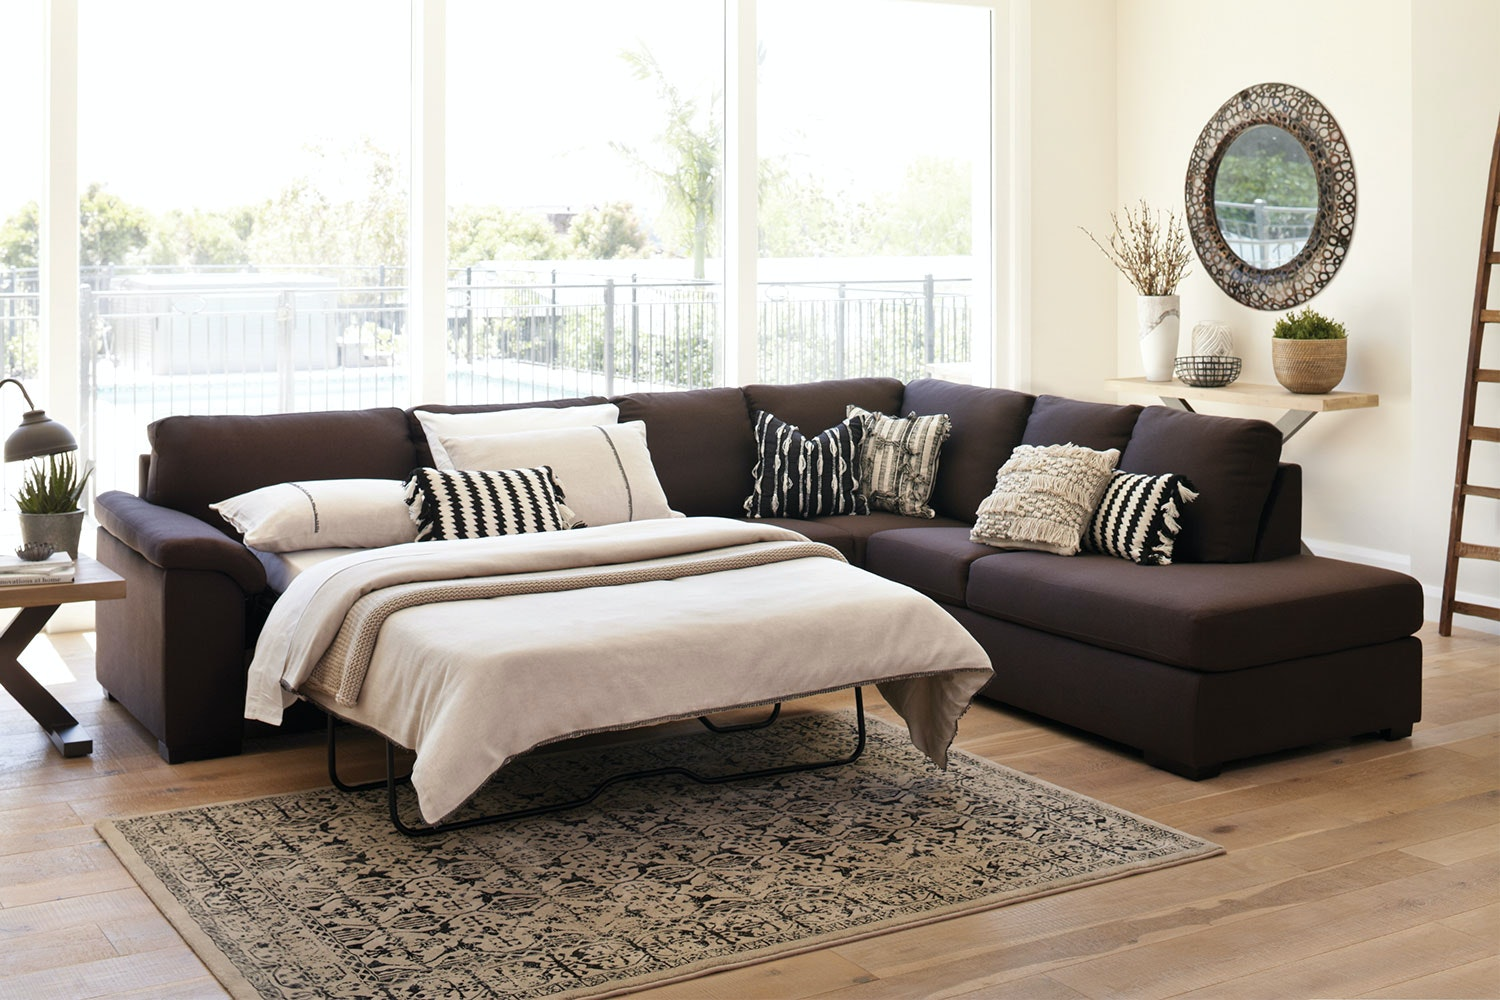 Galaxy Corner Chaise Sofa Bed and Ottoman : corner chaise sofa - Sectionals, Sofas & Couches